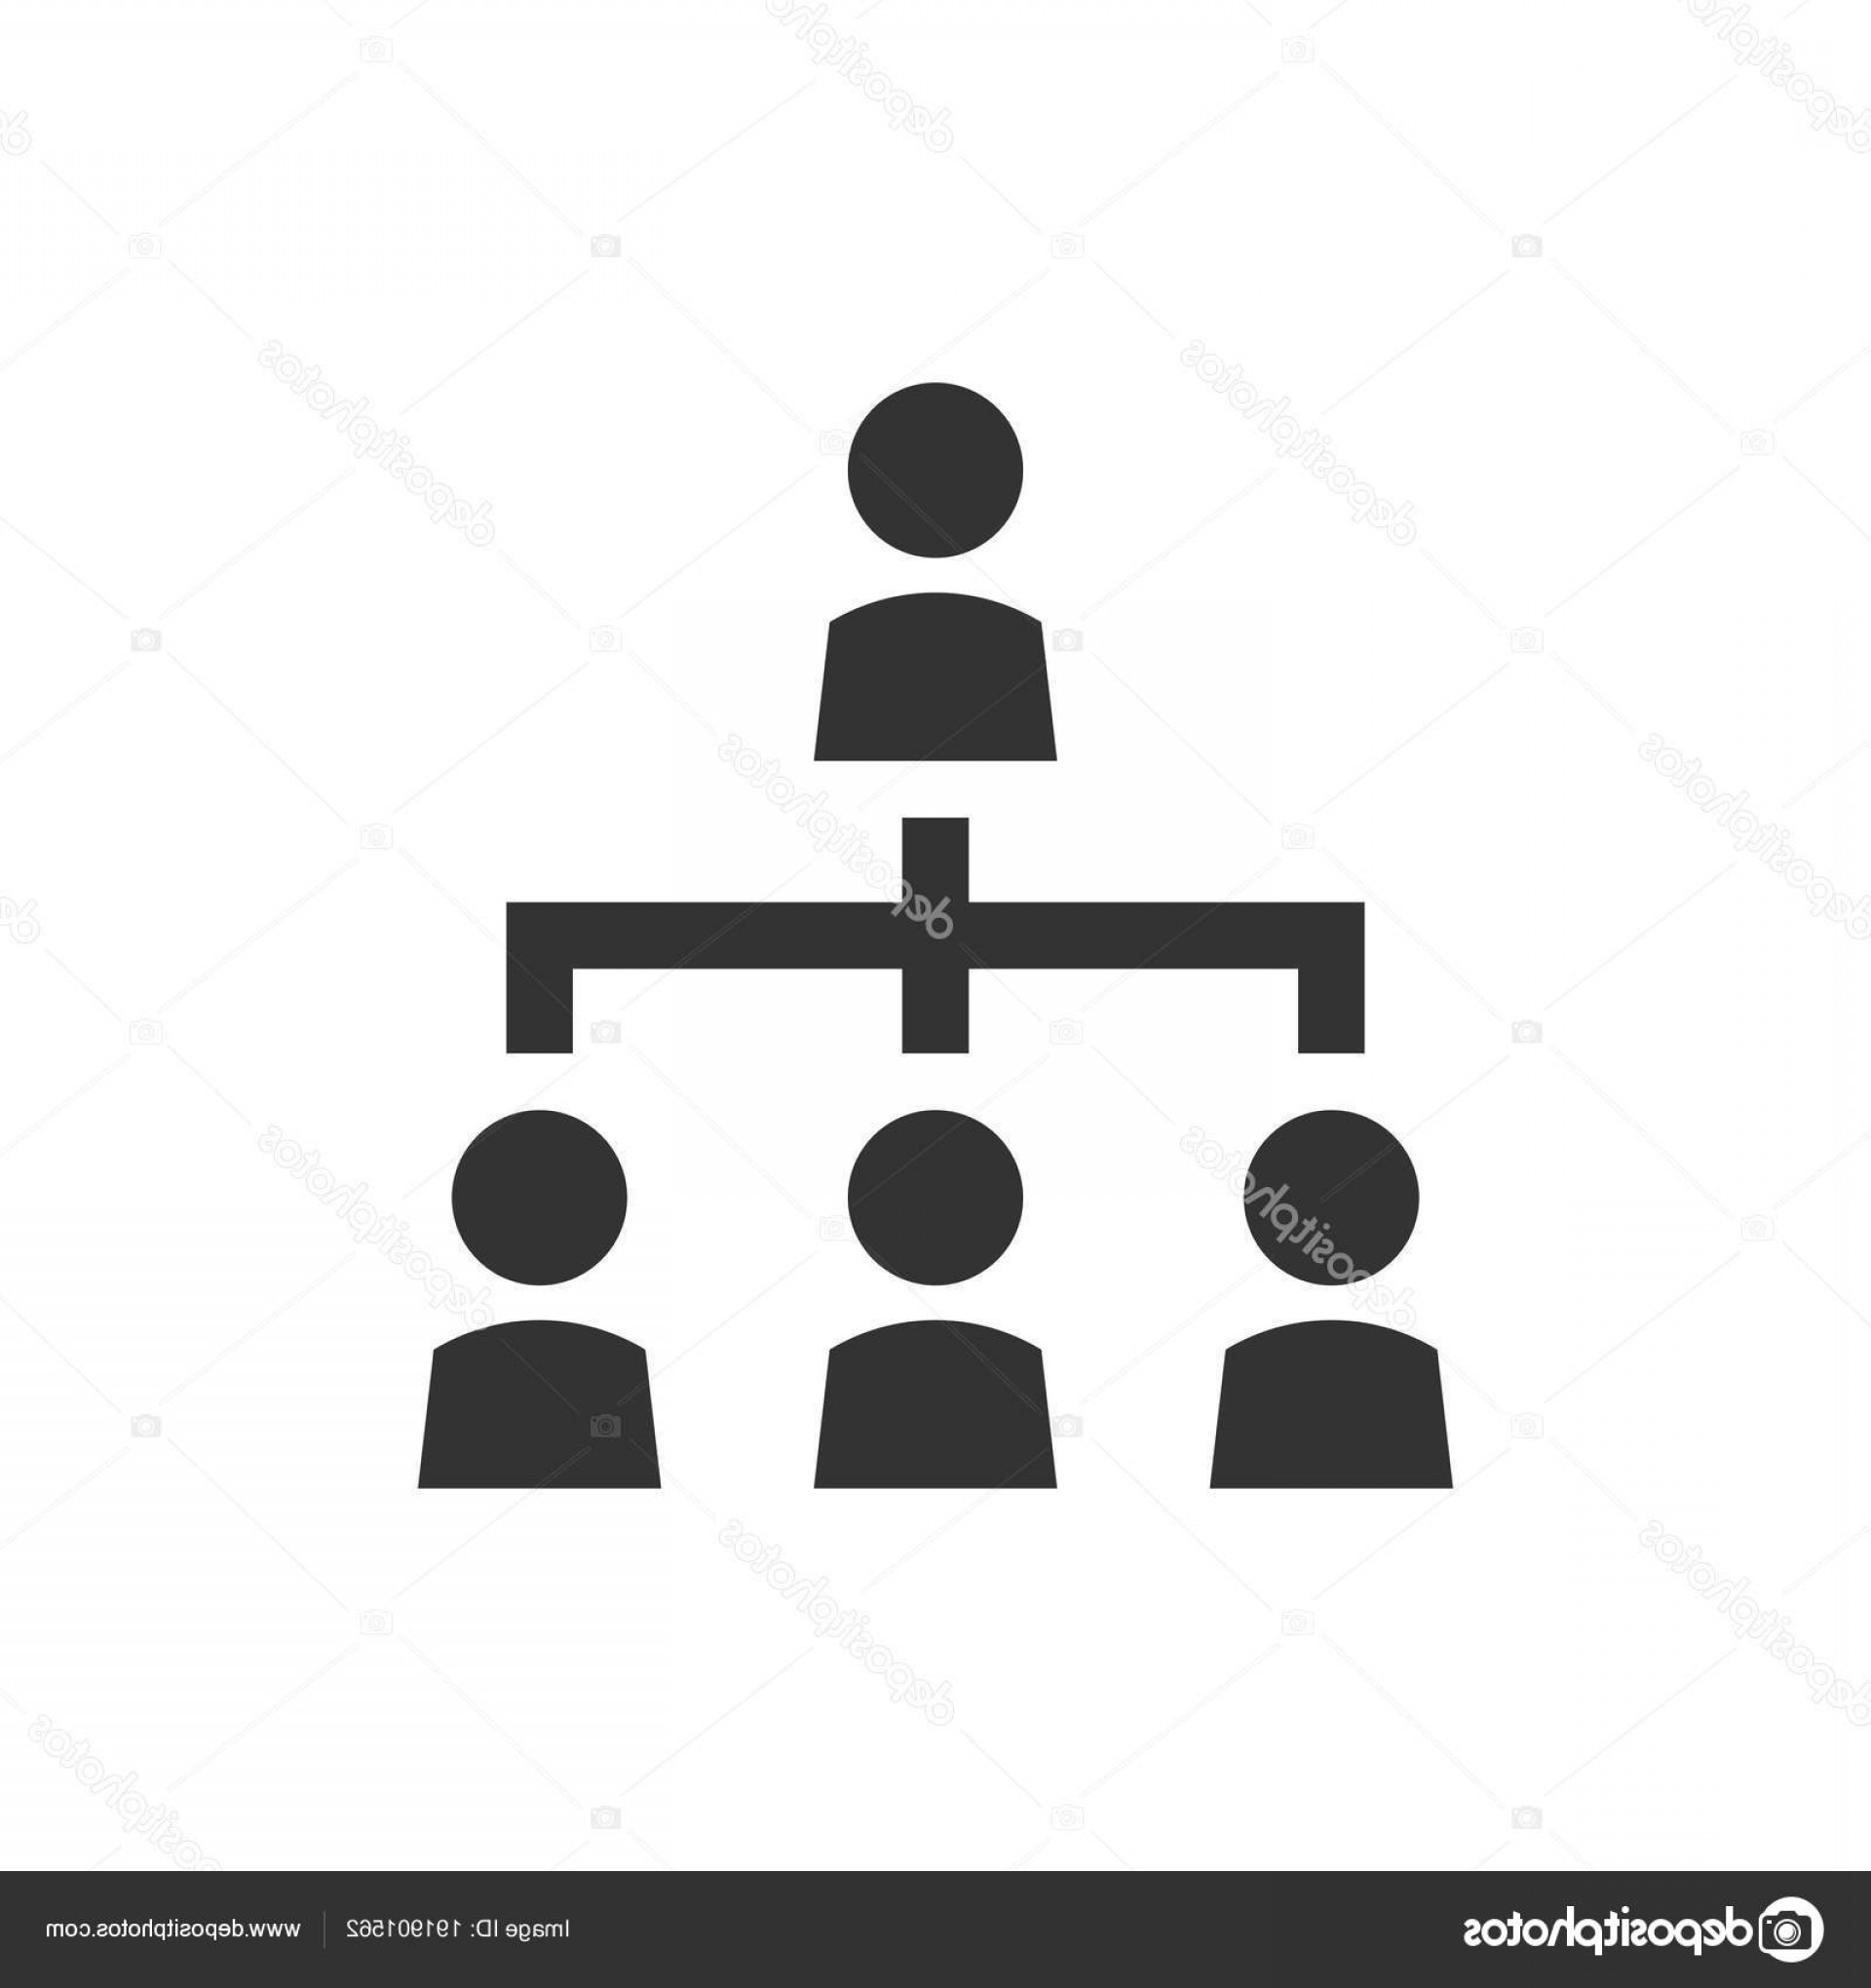 Vector Black And White Organization: Stock Illustration Corporate Organization Chart With Business